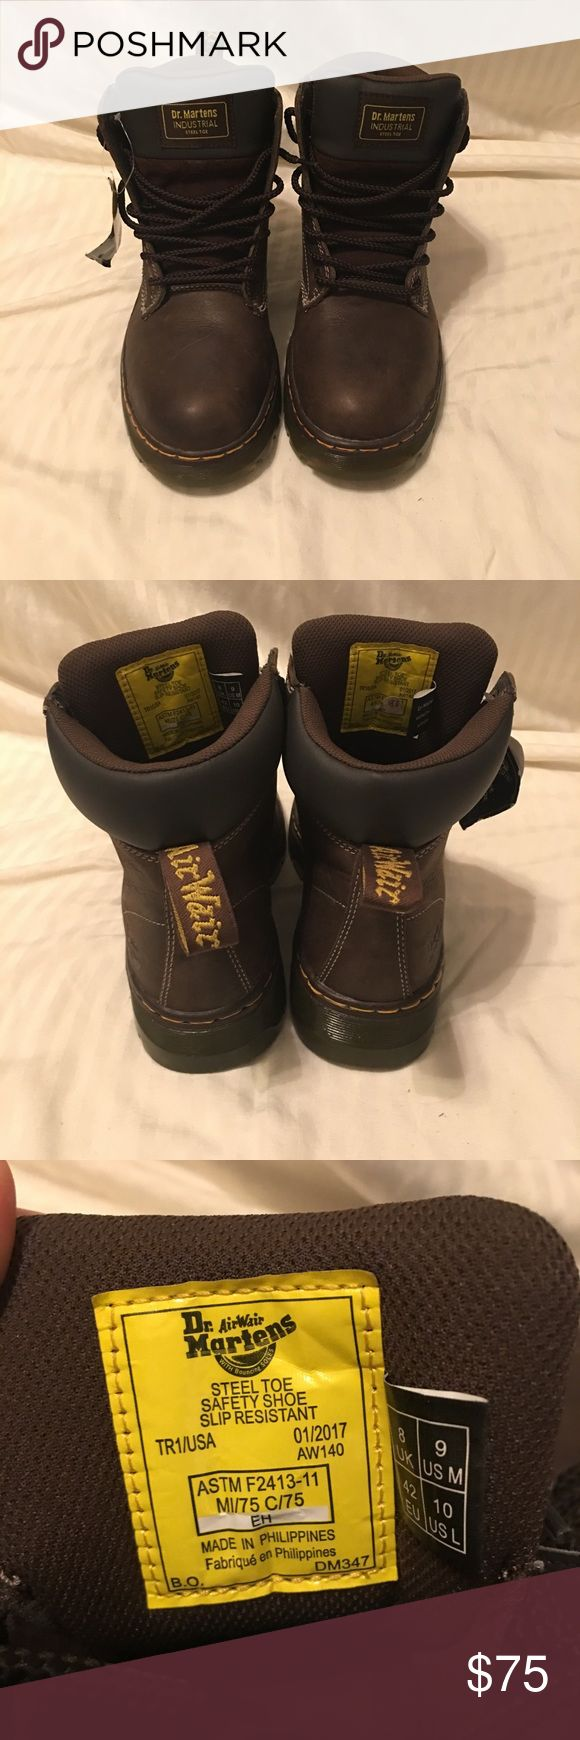 Dr. Martens Steel Toe Heavy Duty Boots New with tags, no box. Great condition. Heavy duty men's work Boots. Dr. Martens Shoes Boots